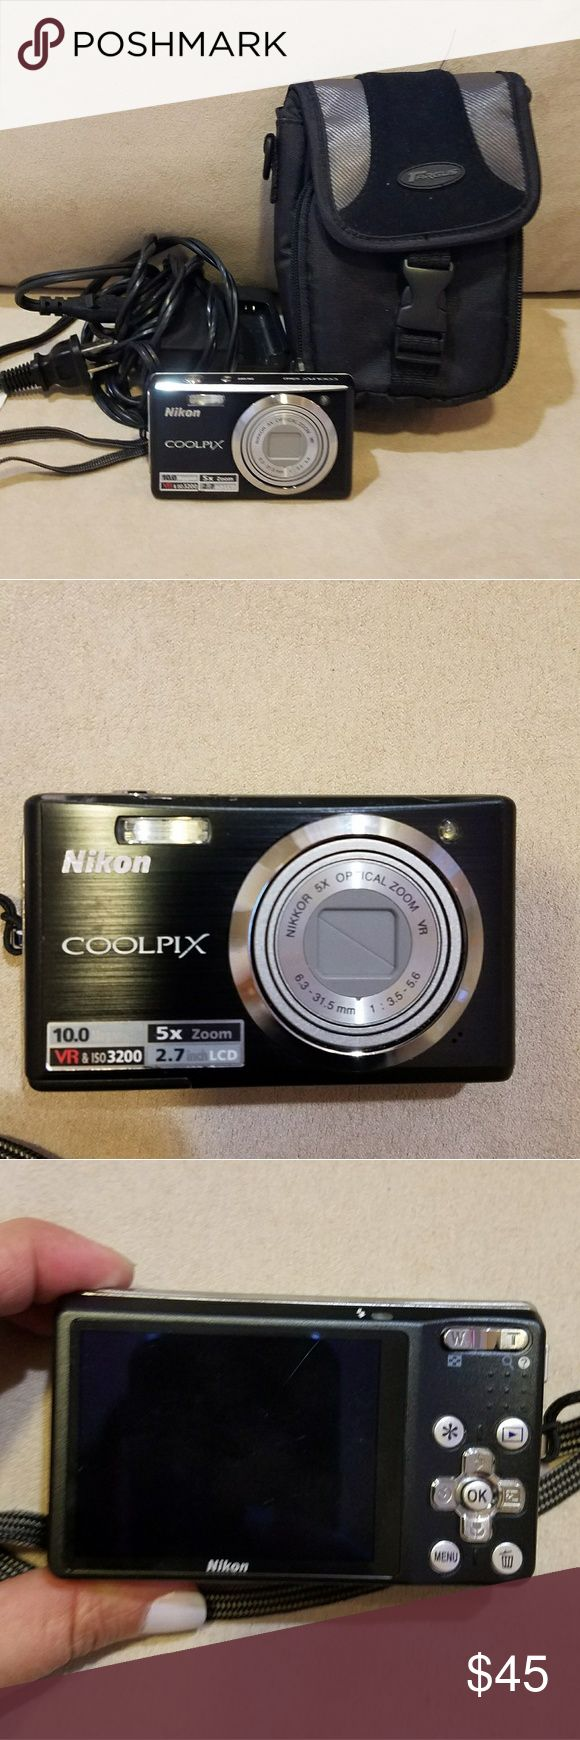 Nikon Coolpix Camera Used Nikon Coolpix Camera 10.0 megapixels/ 5x zoom. Comes with charger and free Targus case Other